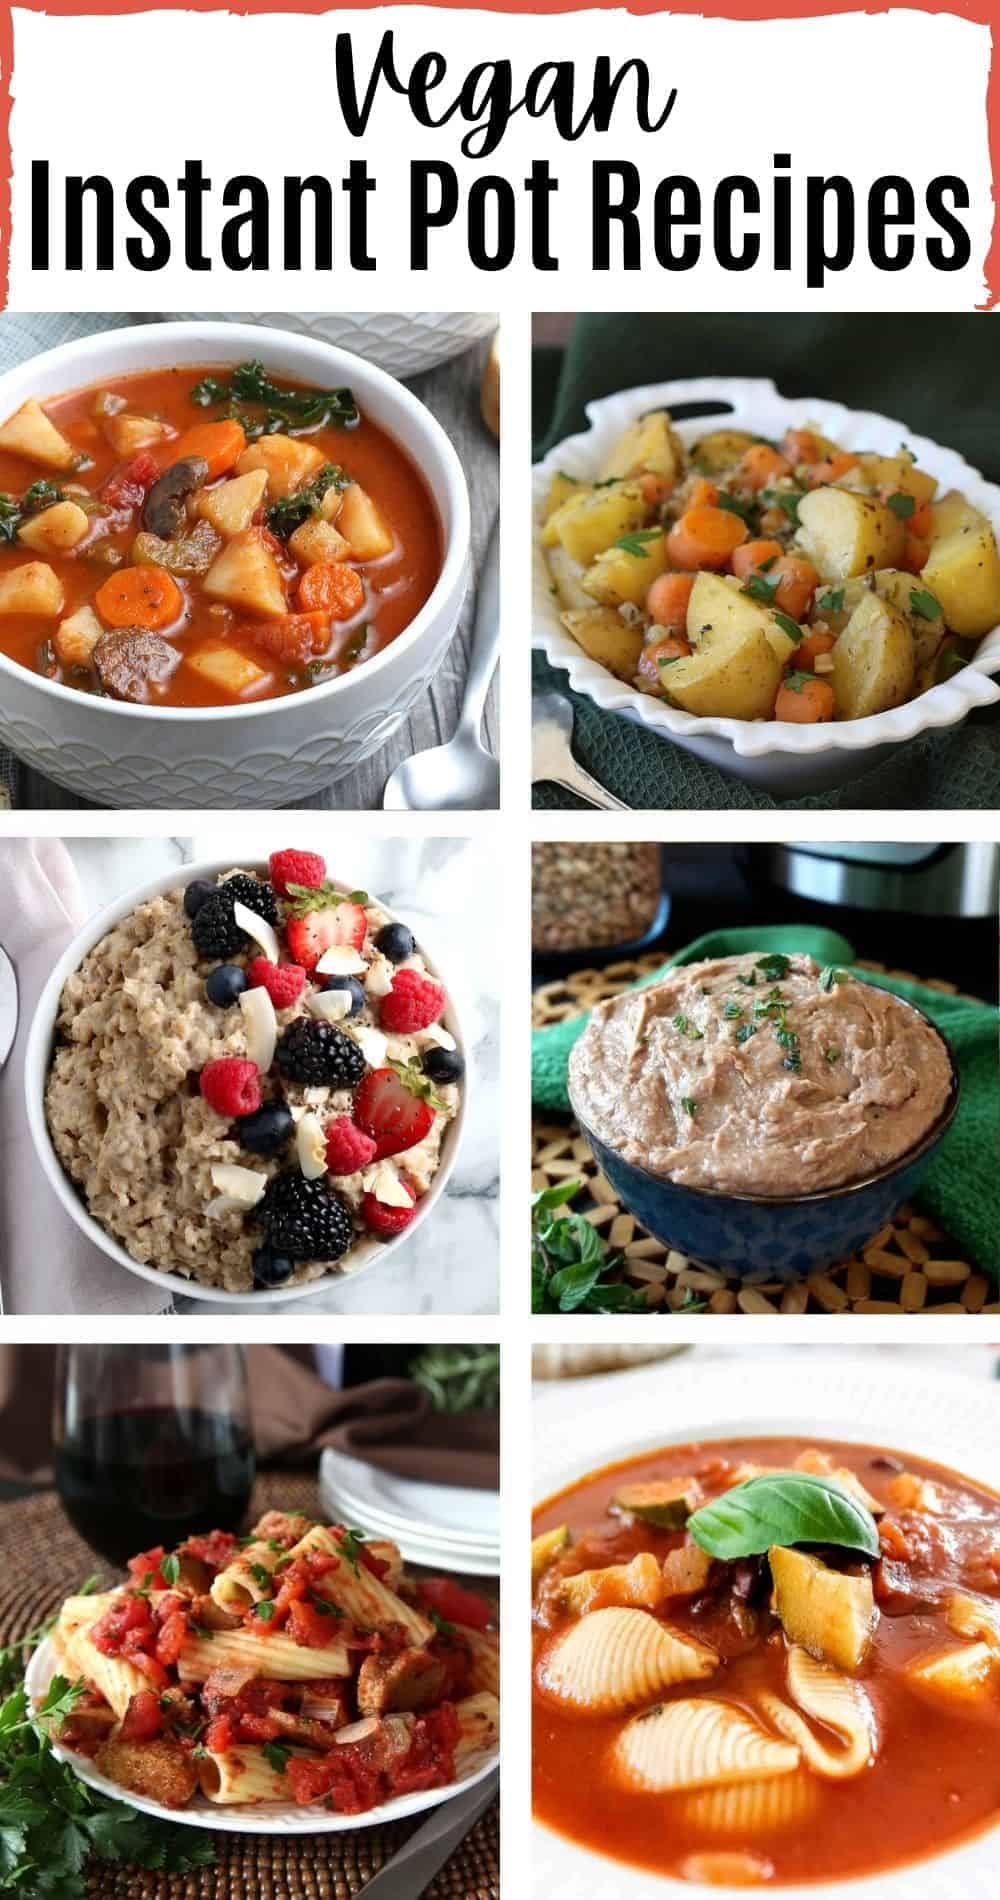 6 photos and a heading to illustrate the vegan Instant pot roundup.